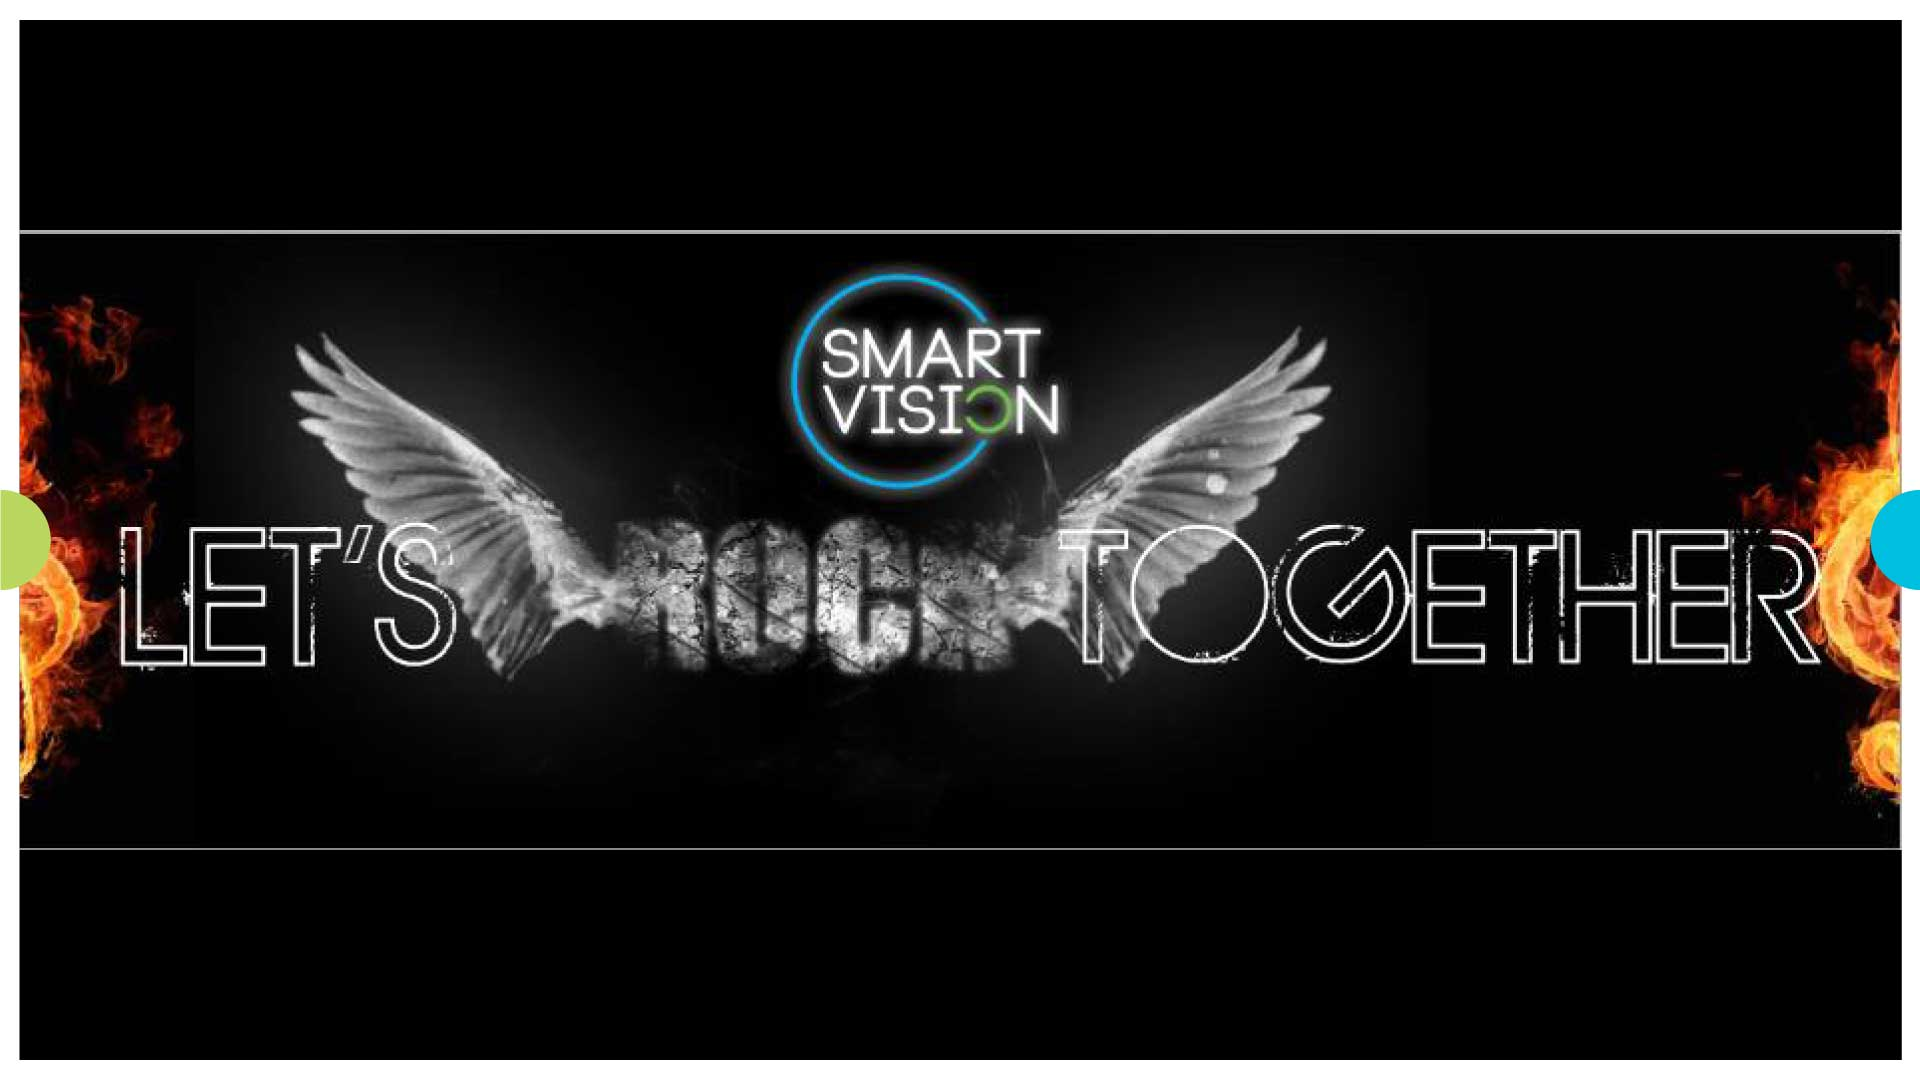 Let's ROCK Together In Smart Vision Style 10